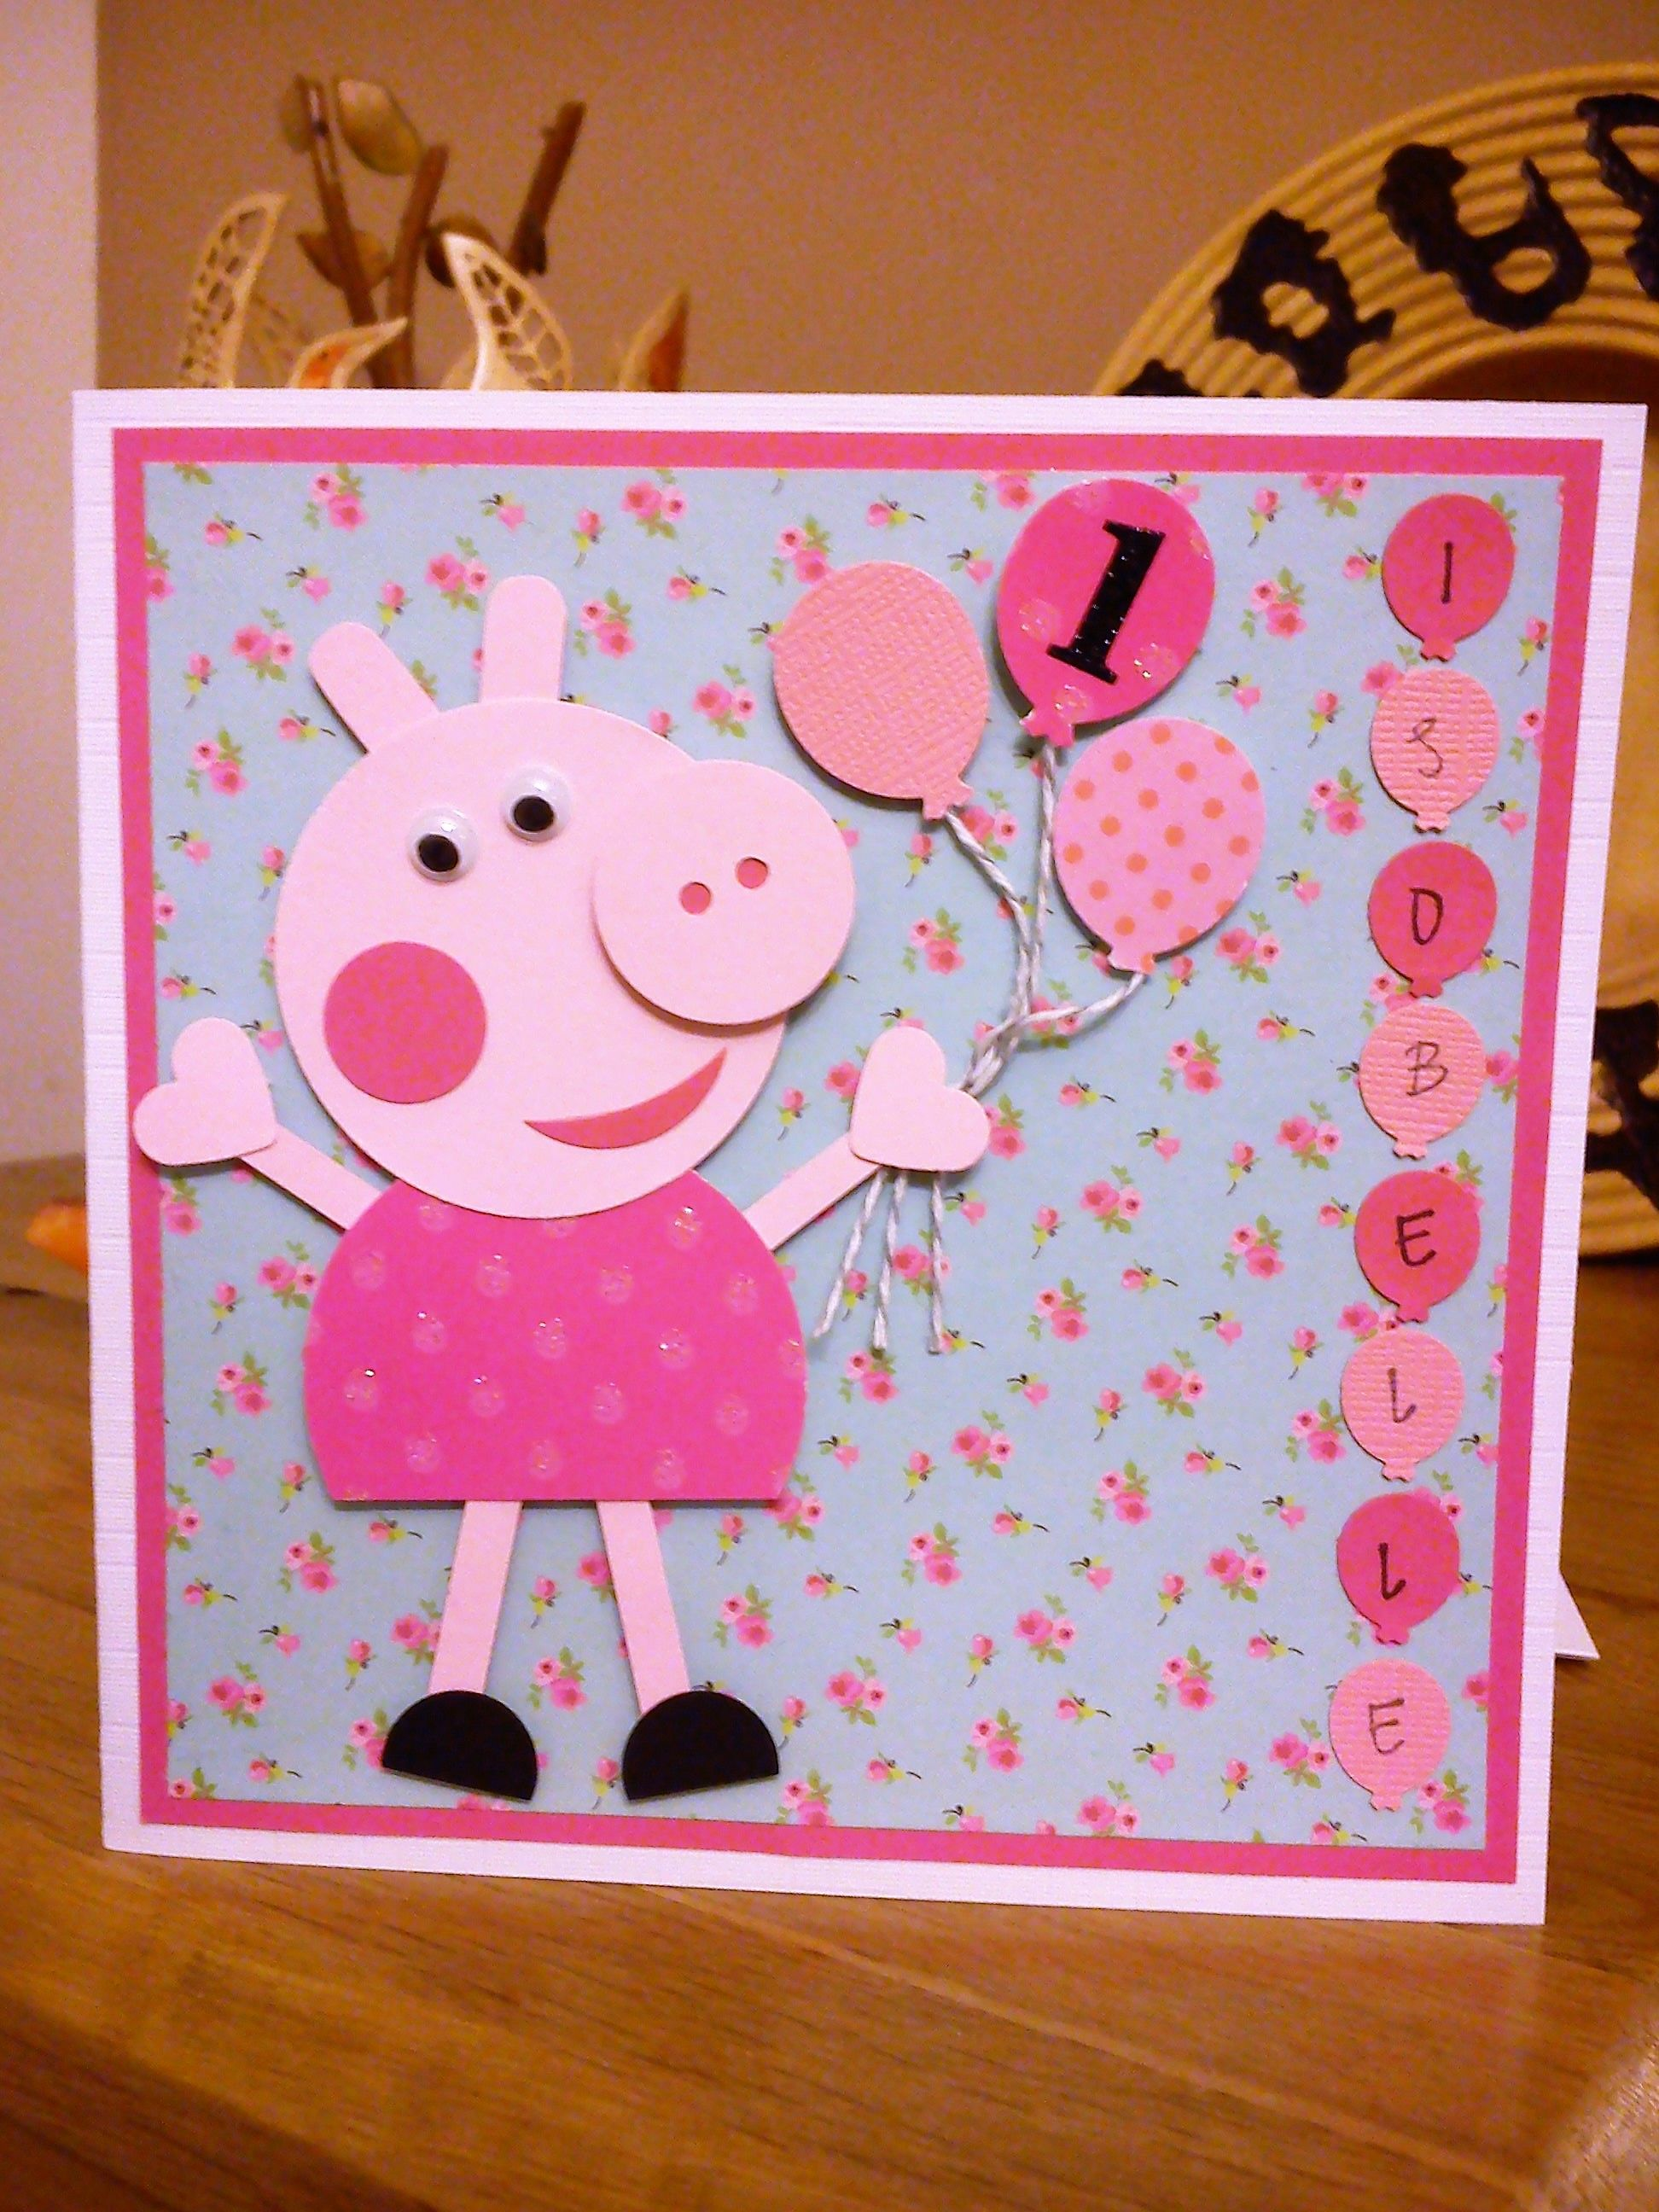 Handmade Personalised Peppa Pig Card I Made With Pretty Papers Girl Birthday Cards Birthday Cards Childrens Valentine Cards